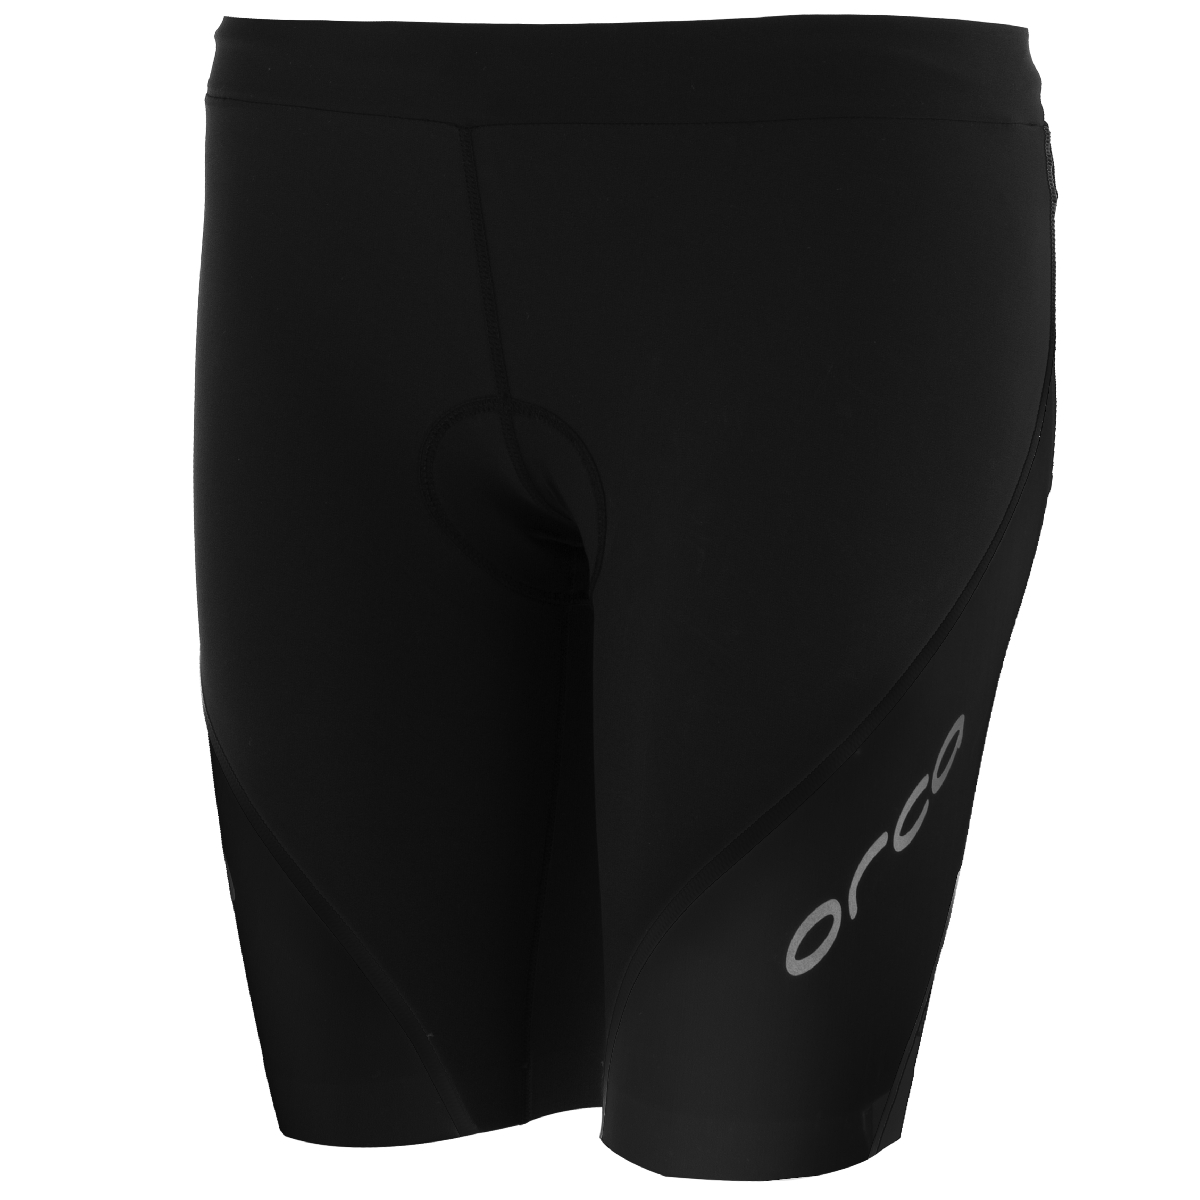 Orca 226 Kompress Tech Triathlon Short Women's Size L Black U.S.A. & Canada